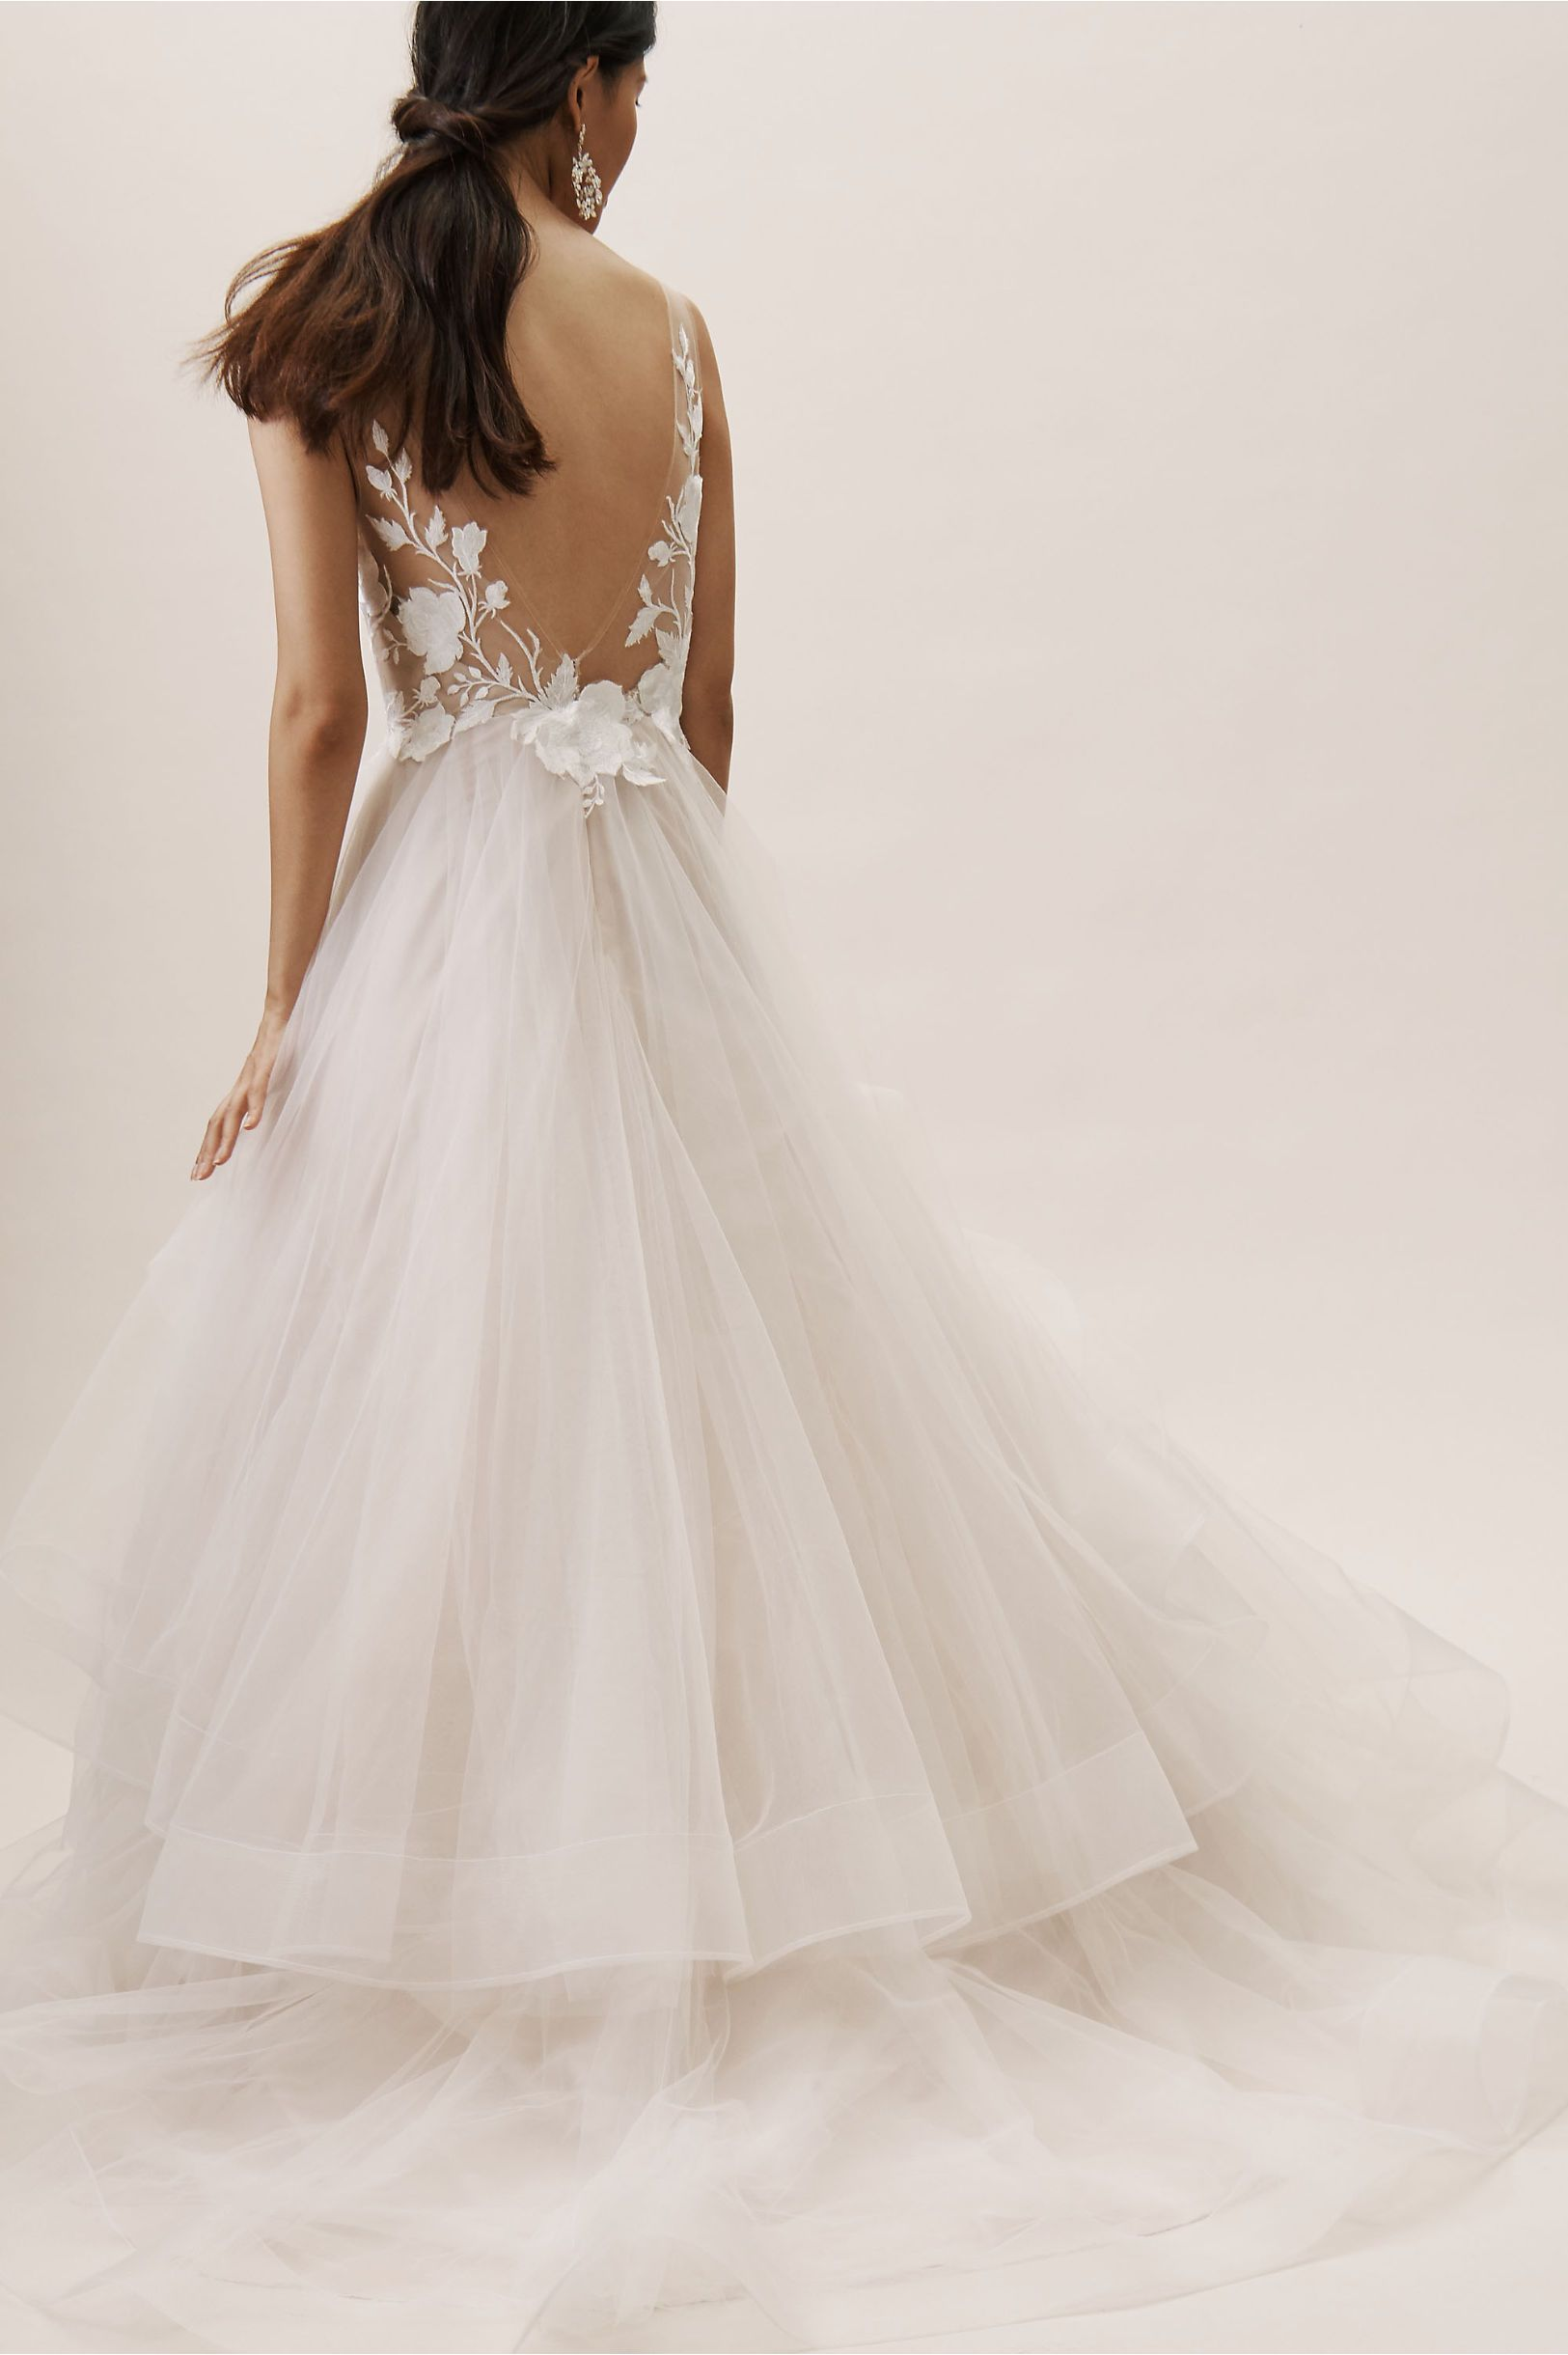 Valera Gown Moscato In Bride Bhldn Wedding Dresses Lace A